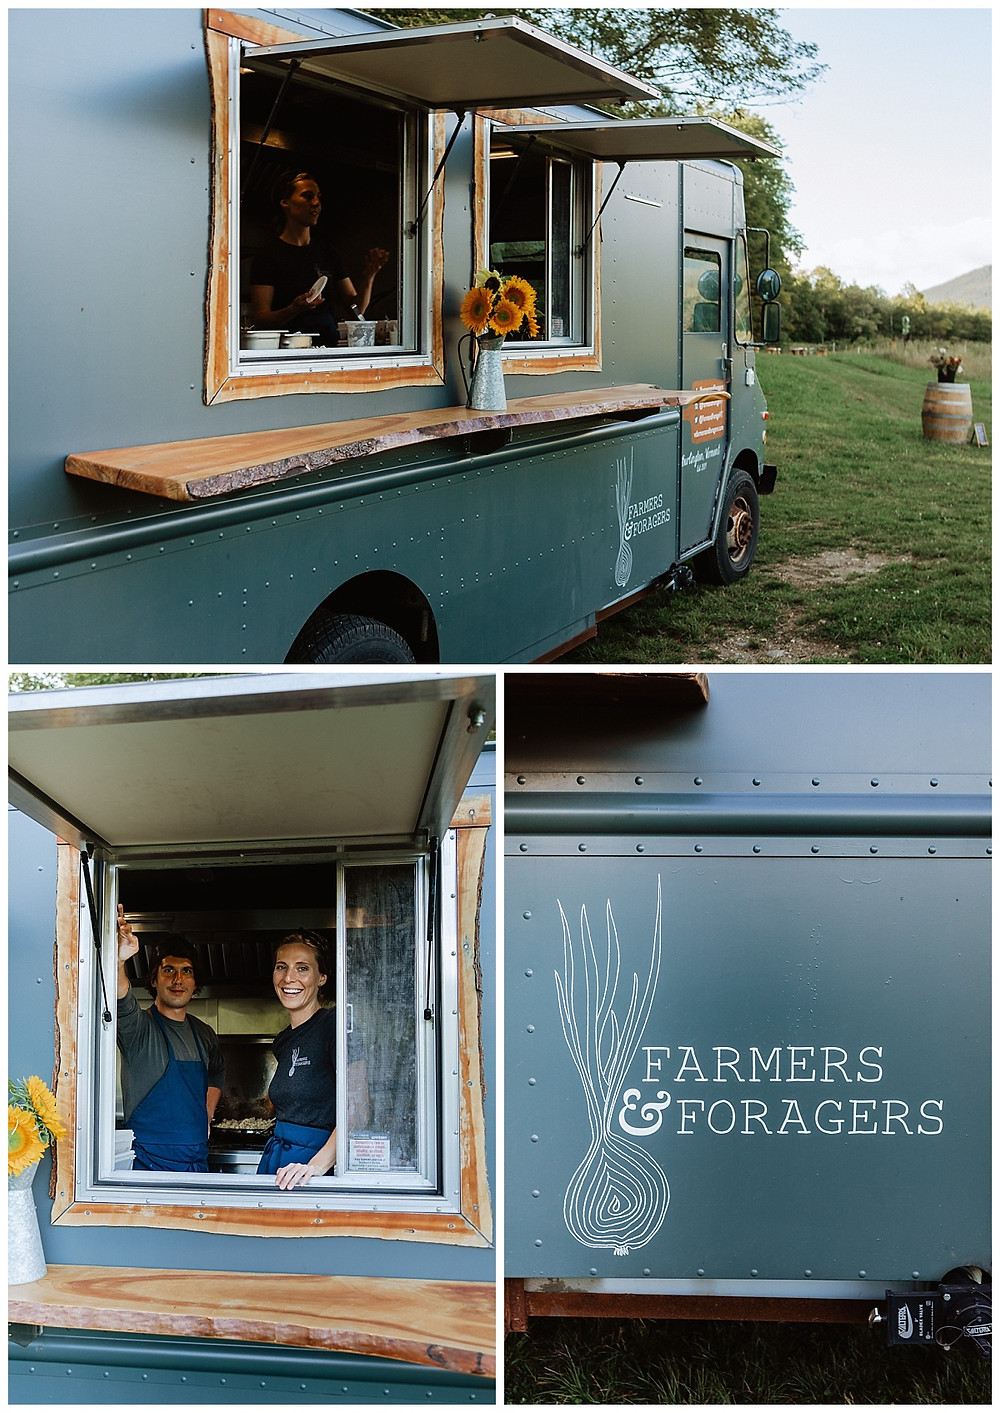 Farmers & Foragers Vermont Food Truck